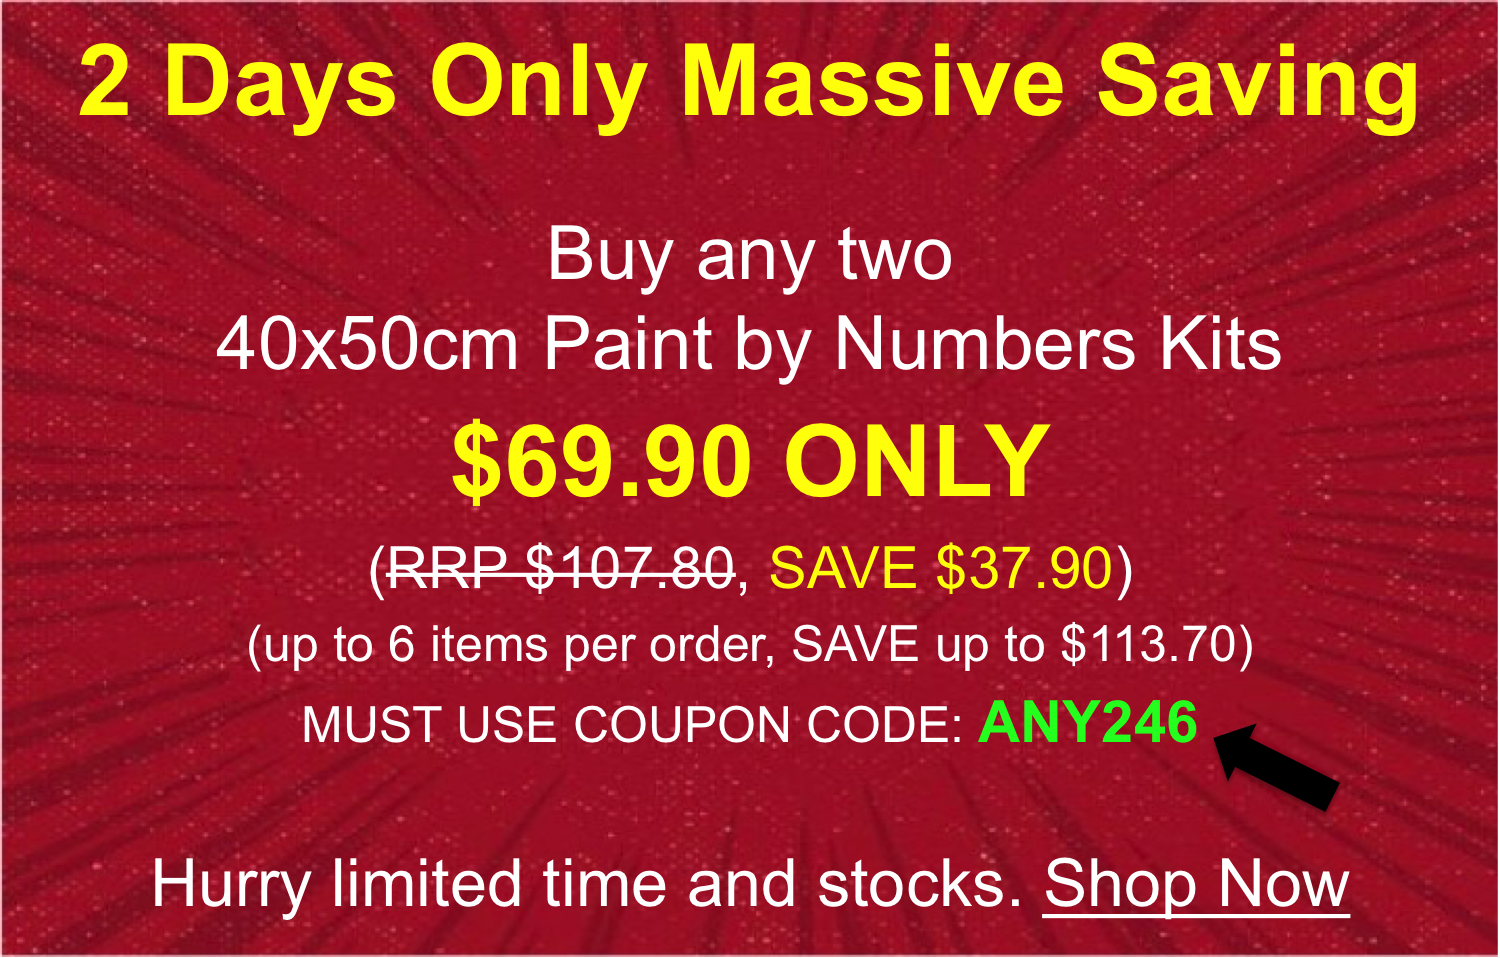 Paint by Numbers - Special Offer Weekend